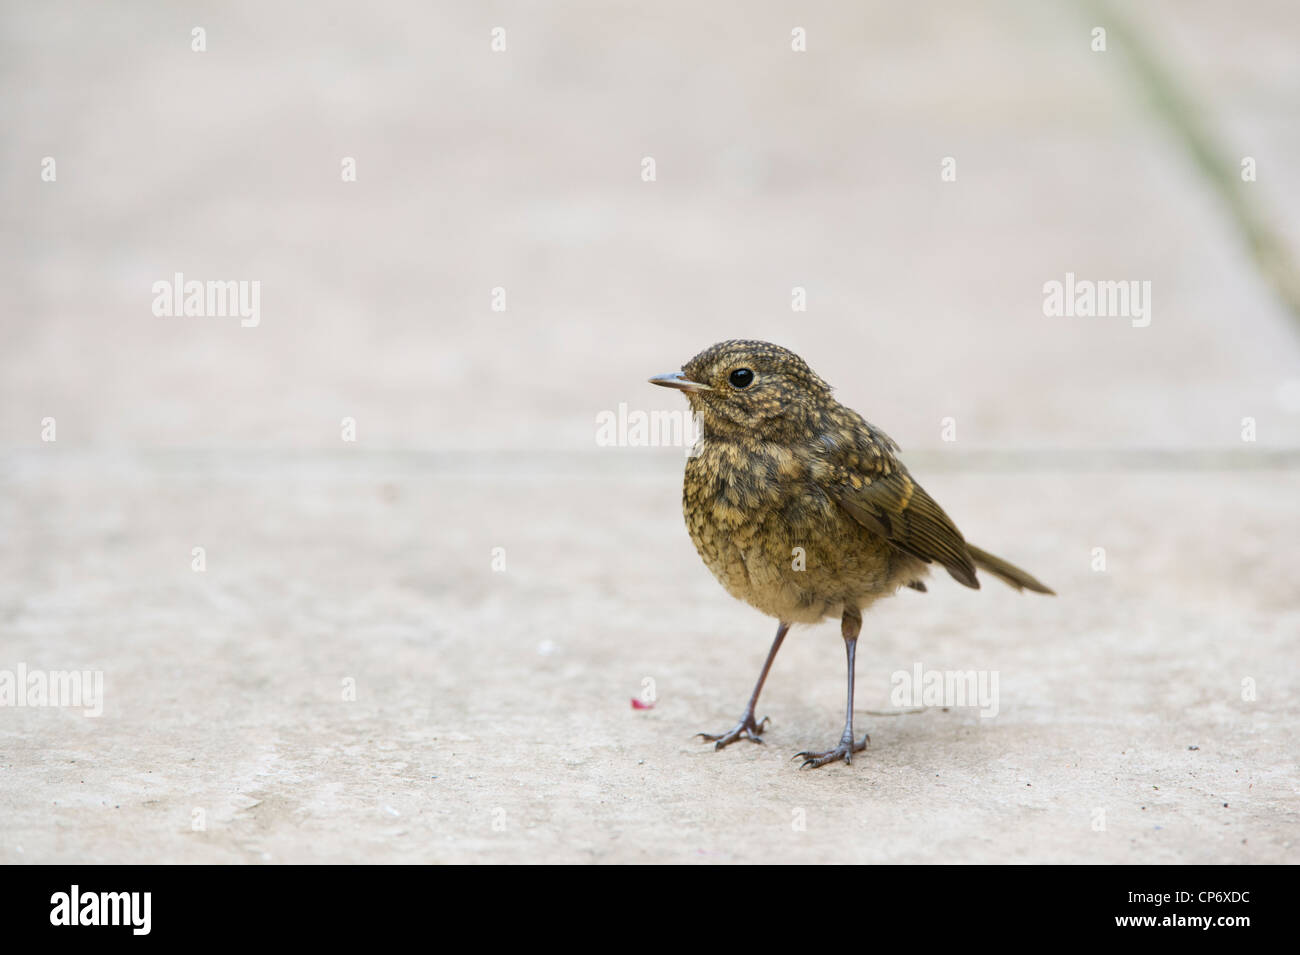 Fledged juvenile Robin on a garden path. UK - Stock Image